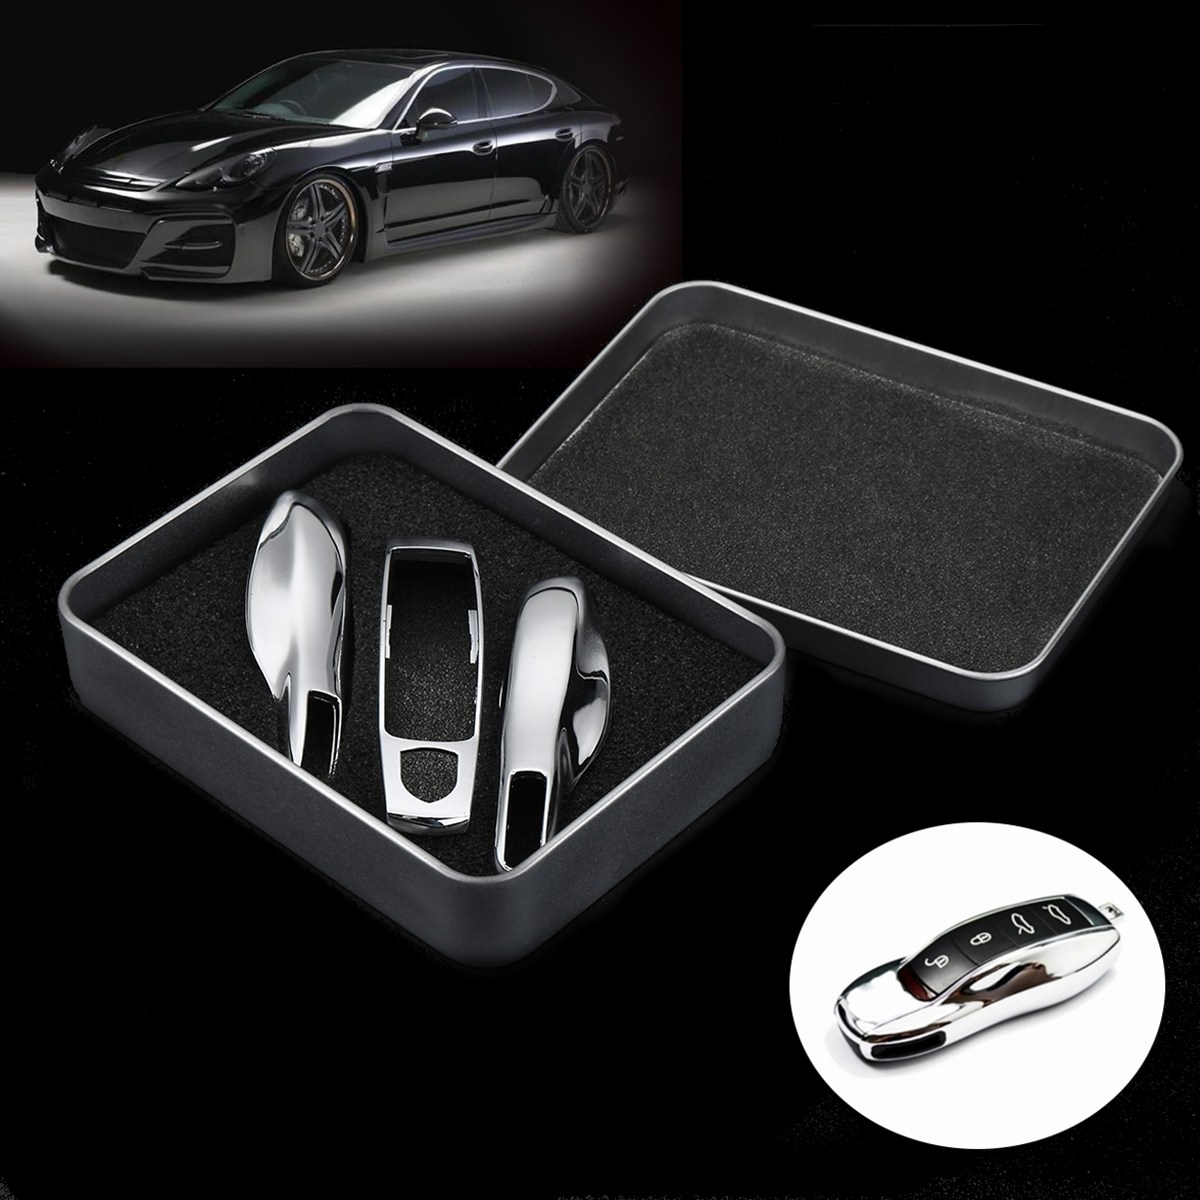 3pcs High Quality Chrome Silver Remote Car Key Case Fob Covers Shell For Porsche Panamera Macan Cayman 911 Styling silver